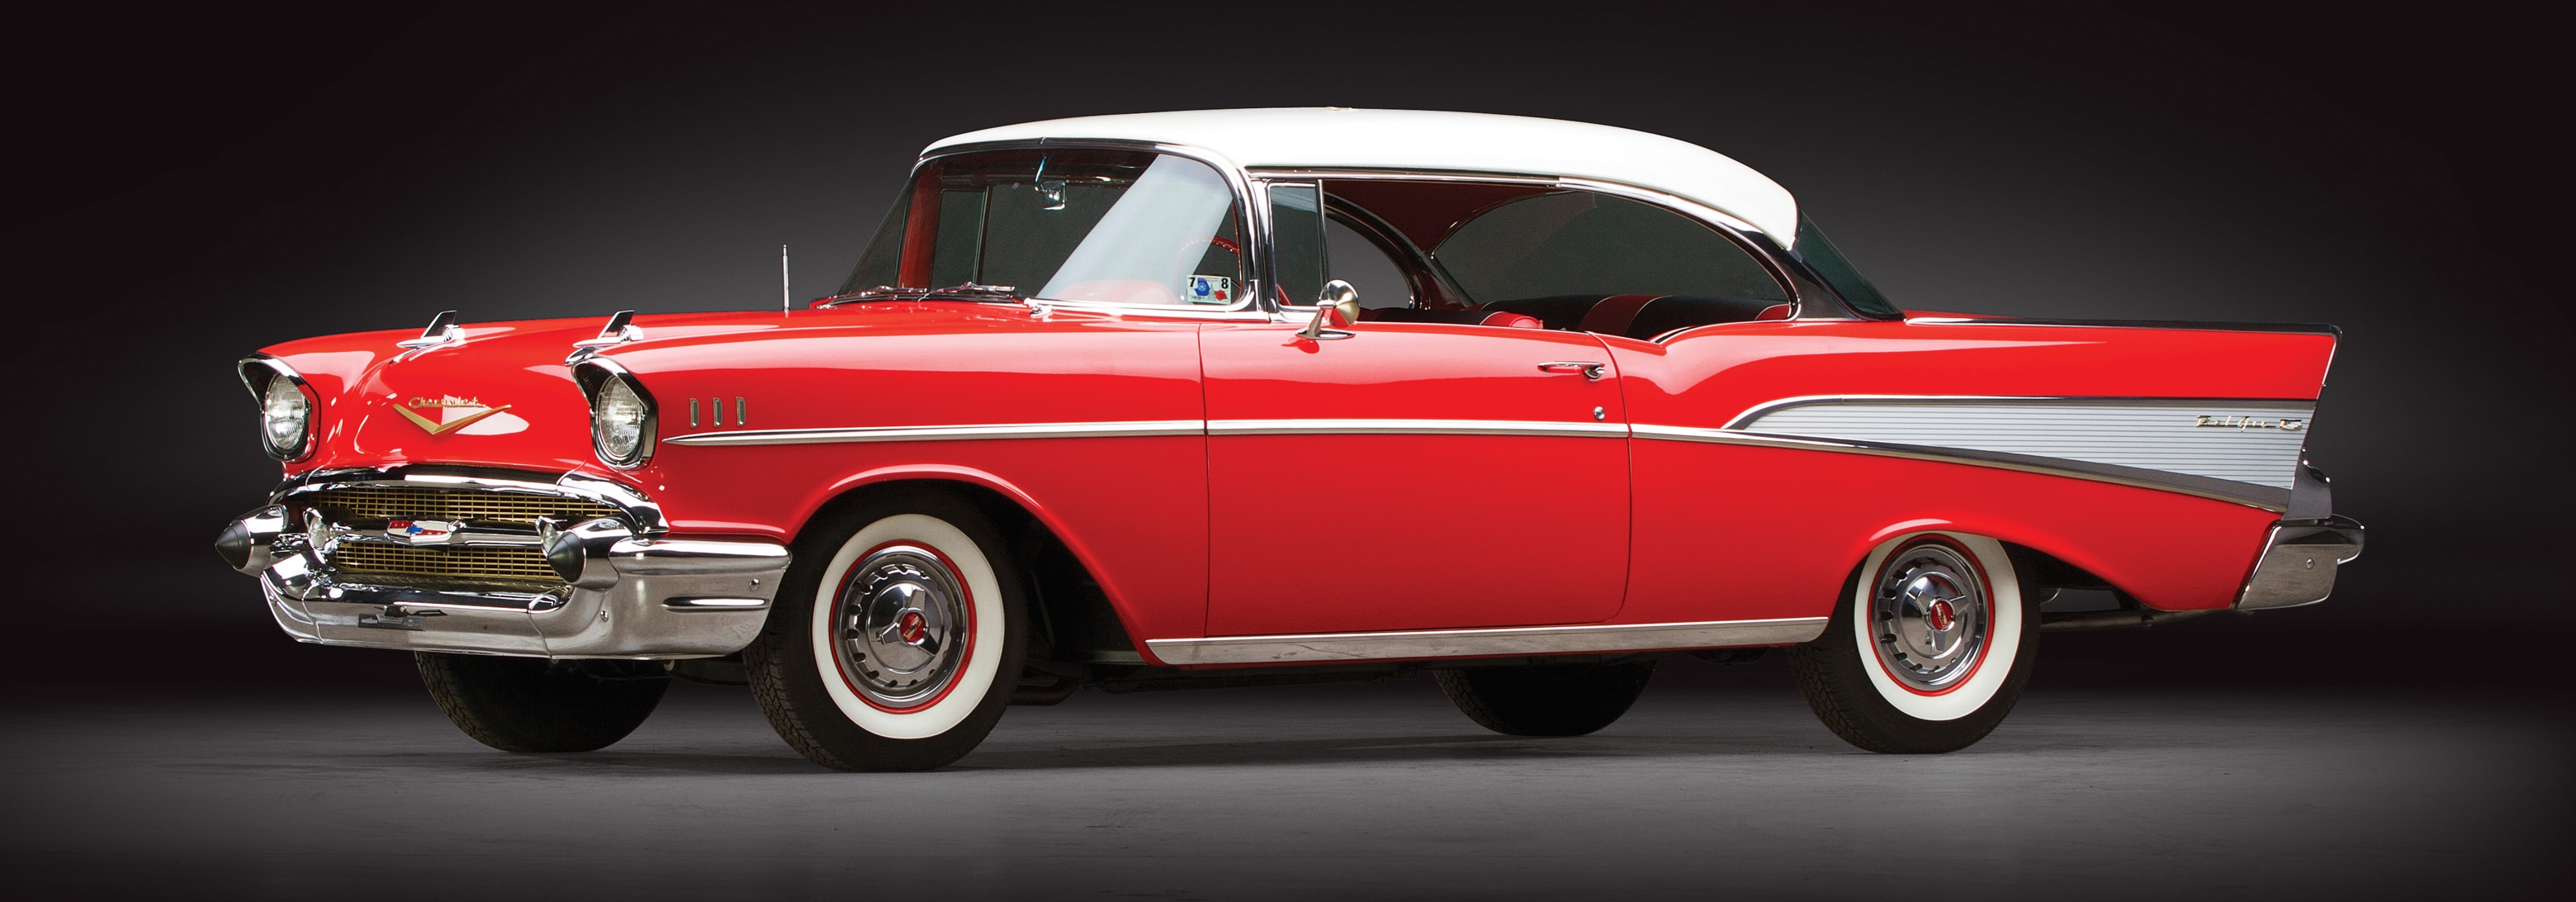 What was so special about the \'57 Chevy? - ClassicCars.com Journal